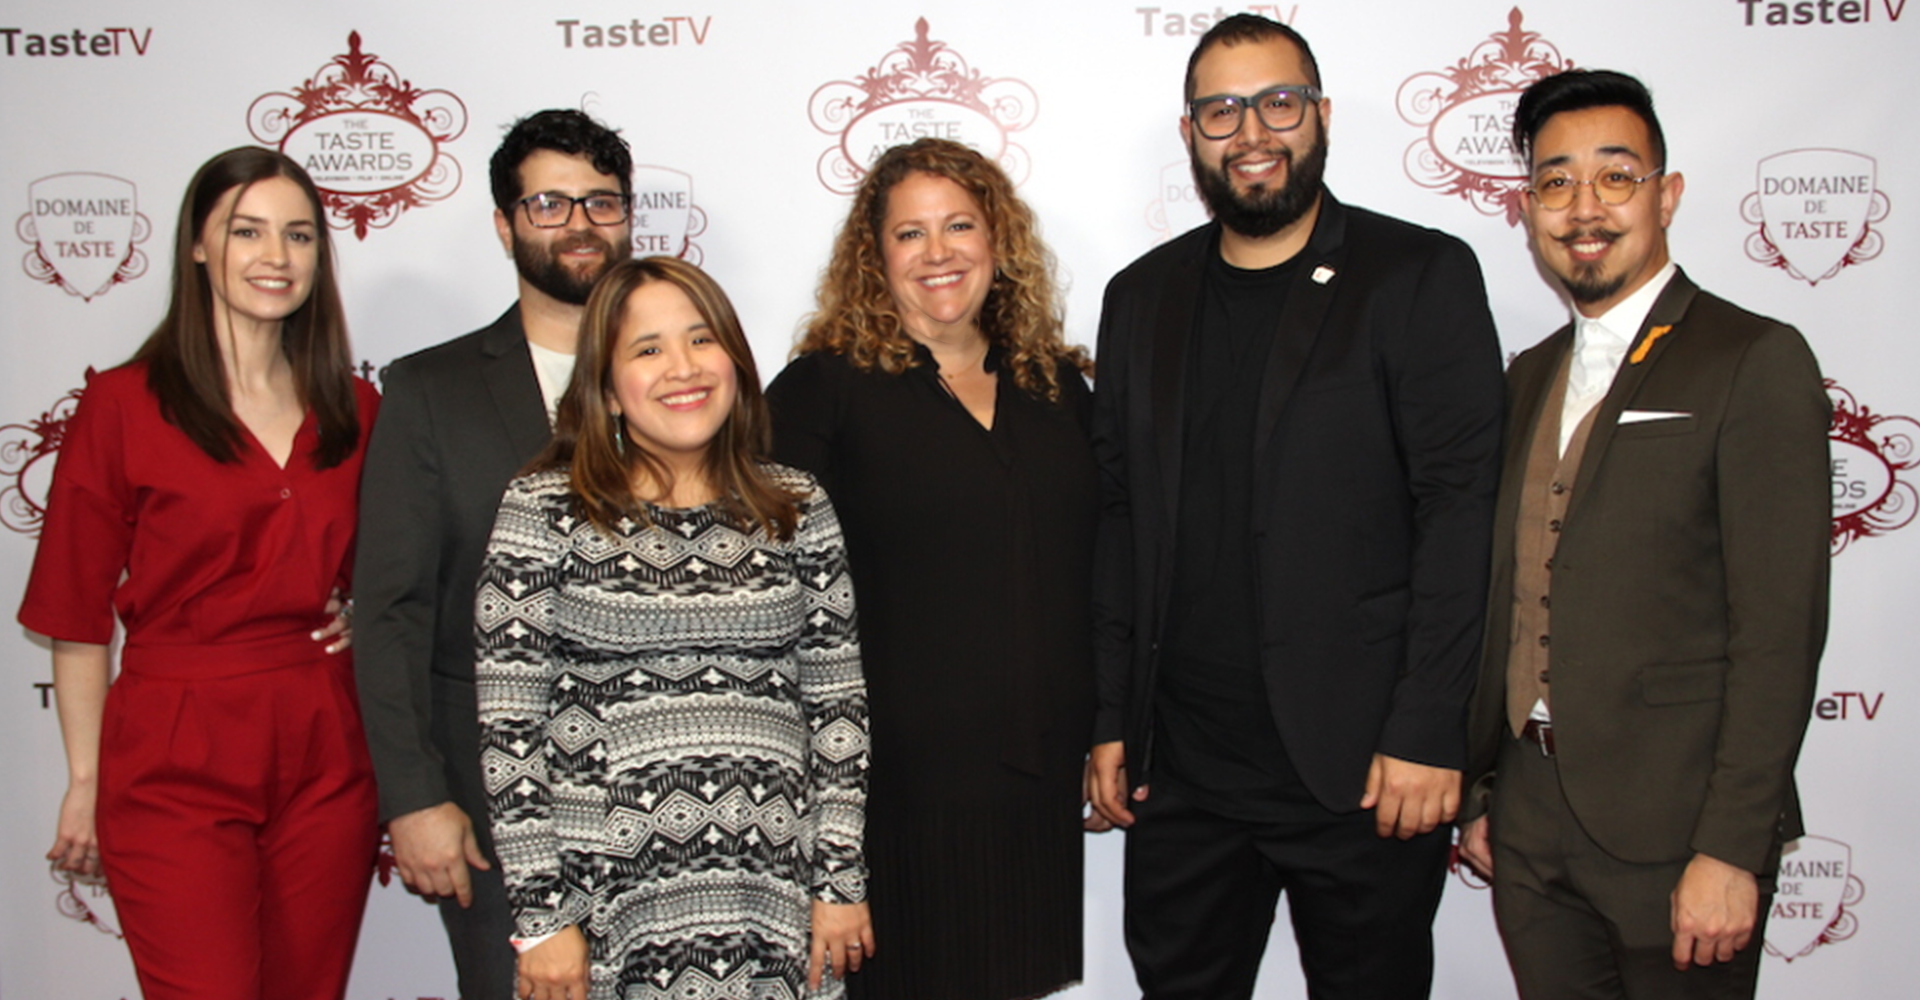 Family Style wins at Taste Awards